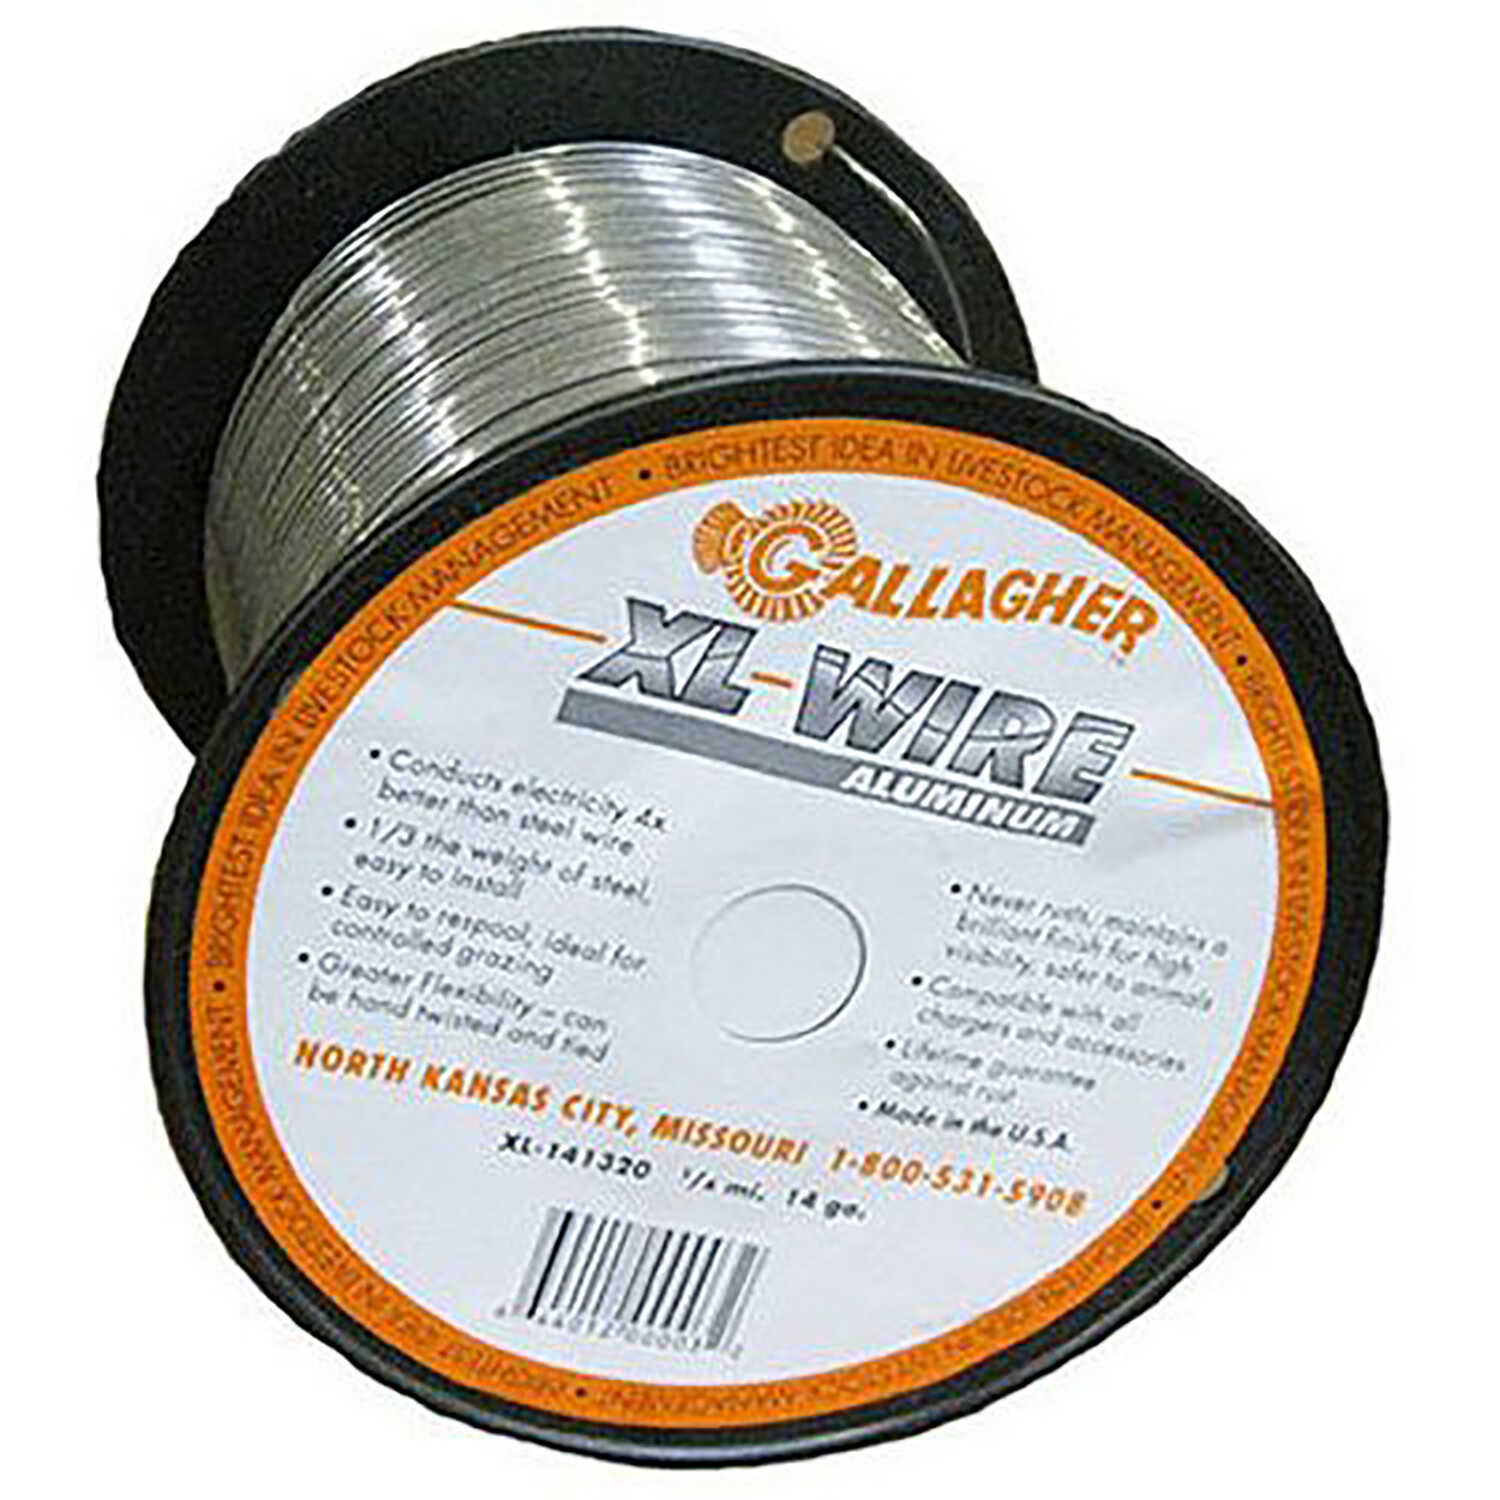 Gallagher  Electric  Electric Fence Wire  1/4 mi. Silver